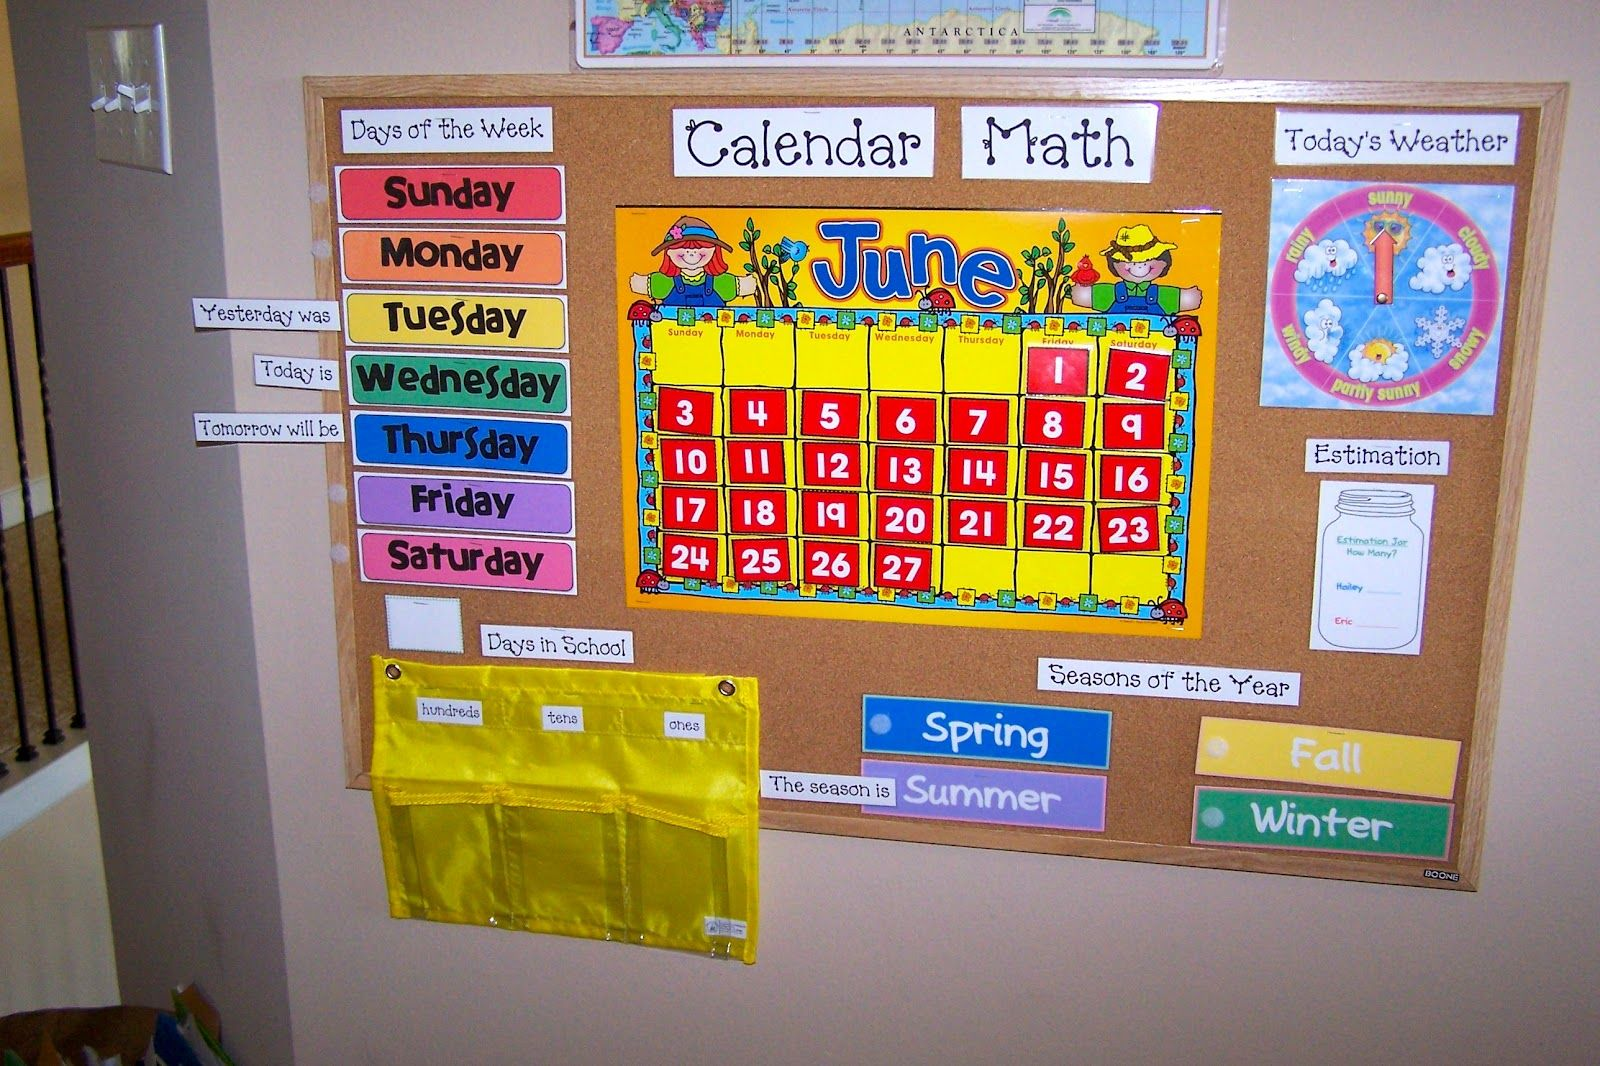 Calendar Organization Chart : Daycare organization pictures the top of units hold